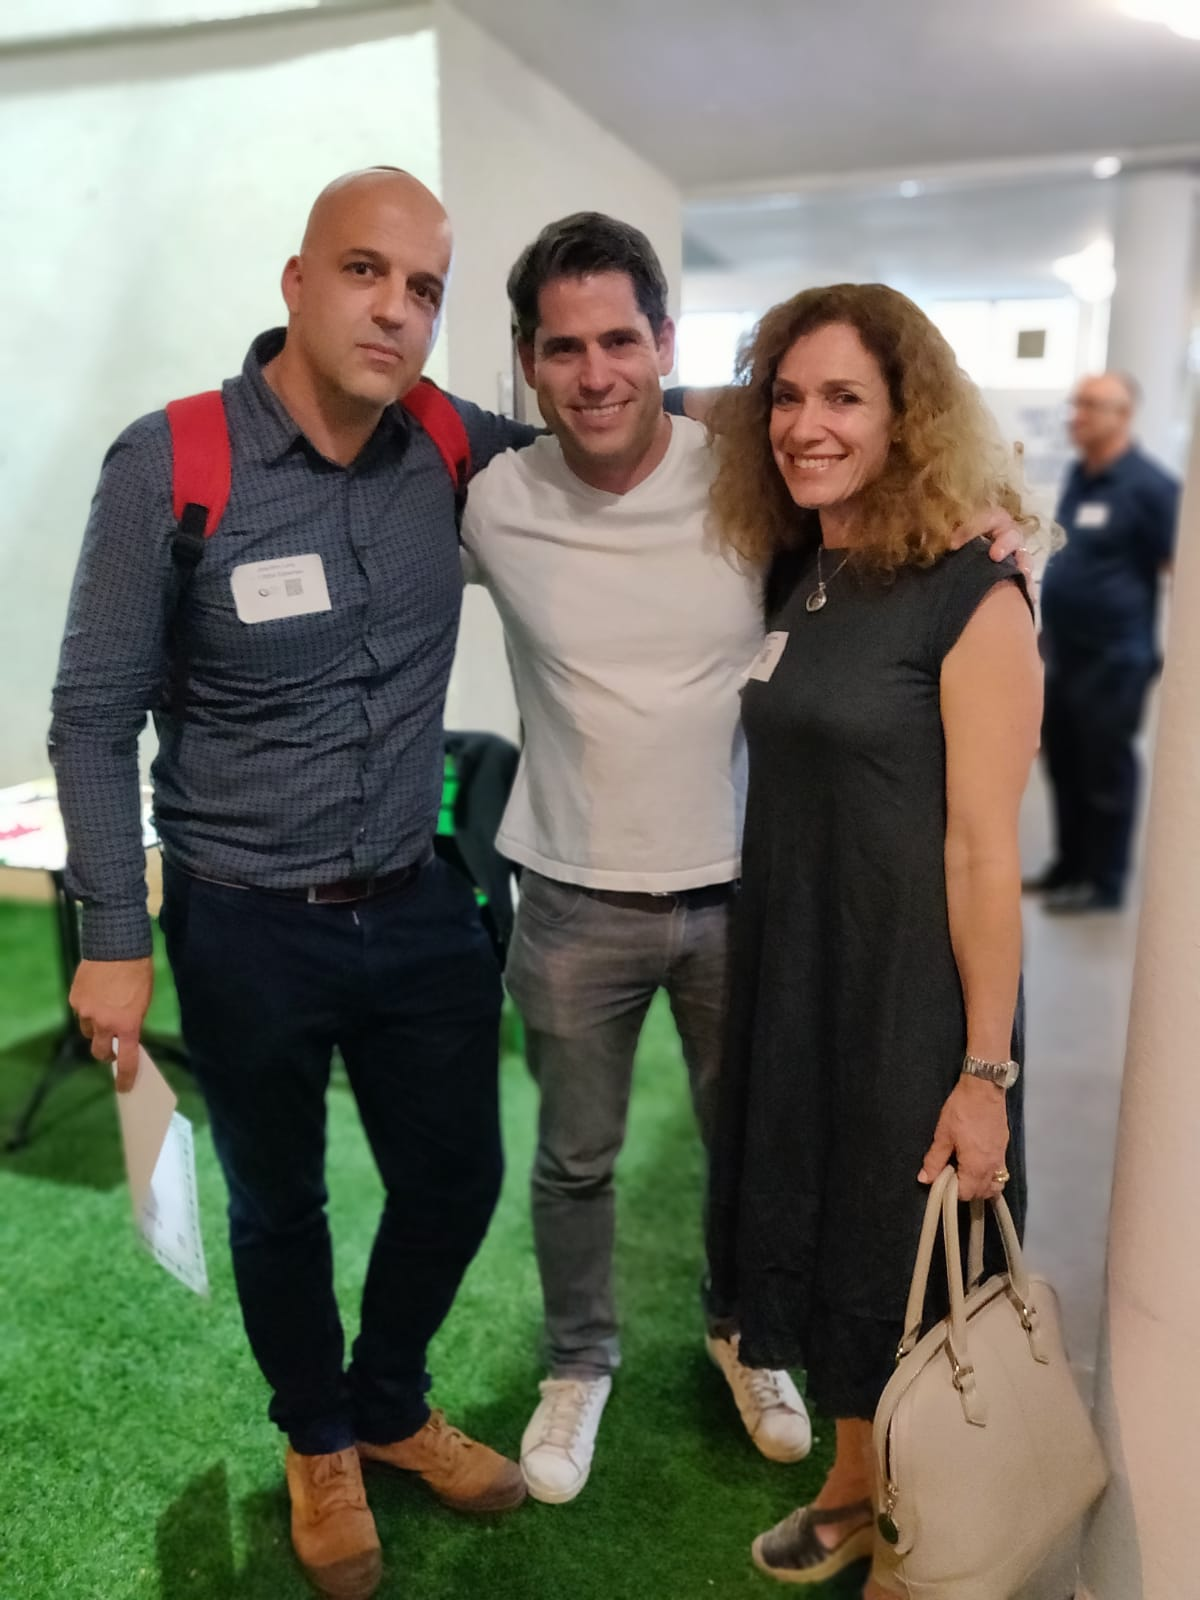 CEO and Founder Joe Levy, Kevin Baxpehler Managing Partner at Remagine VC, Michelle Orrelle Project Manager at 172ai.